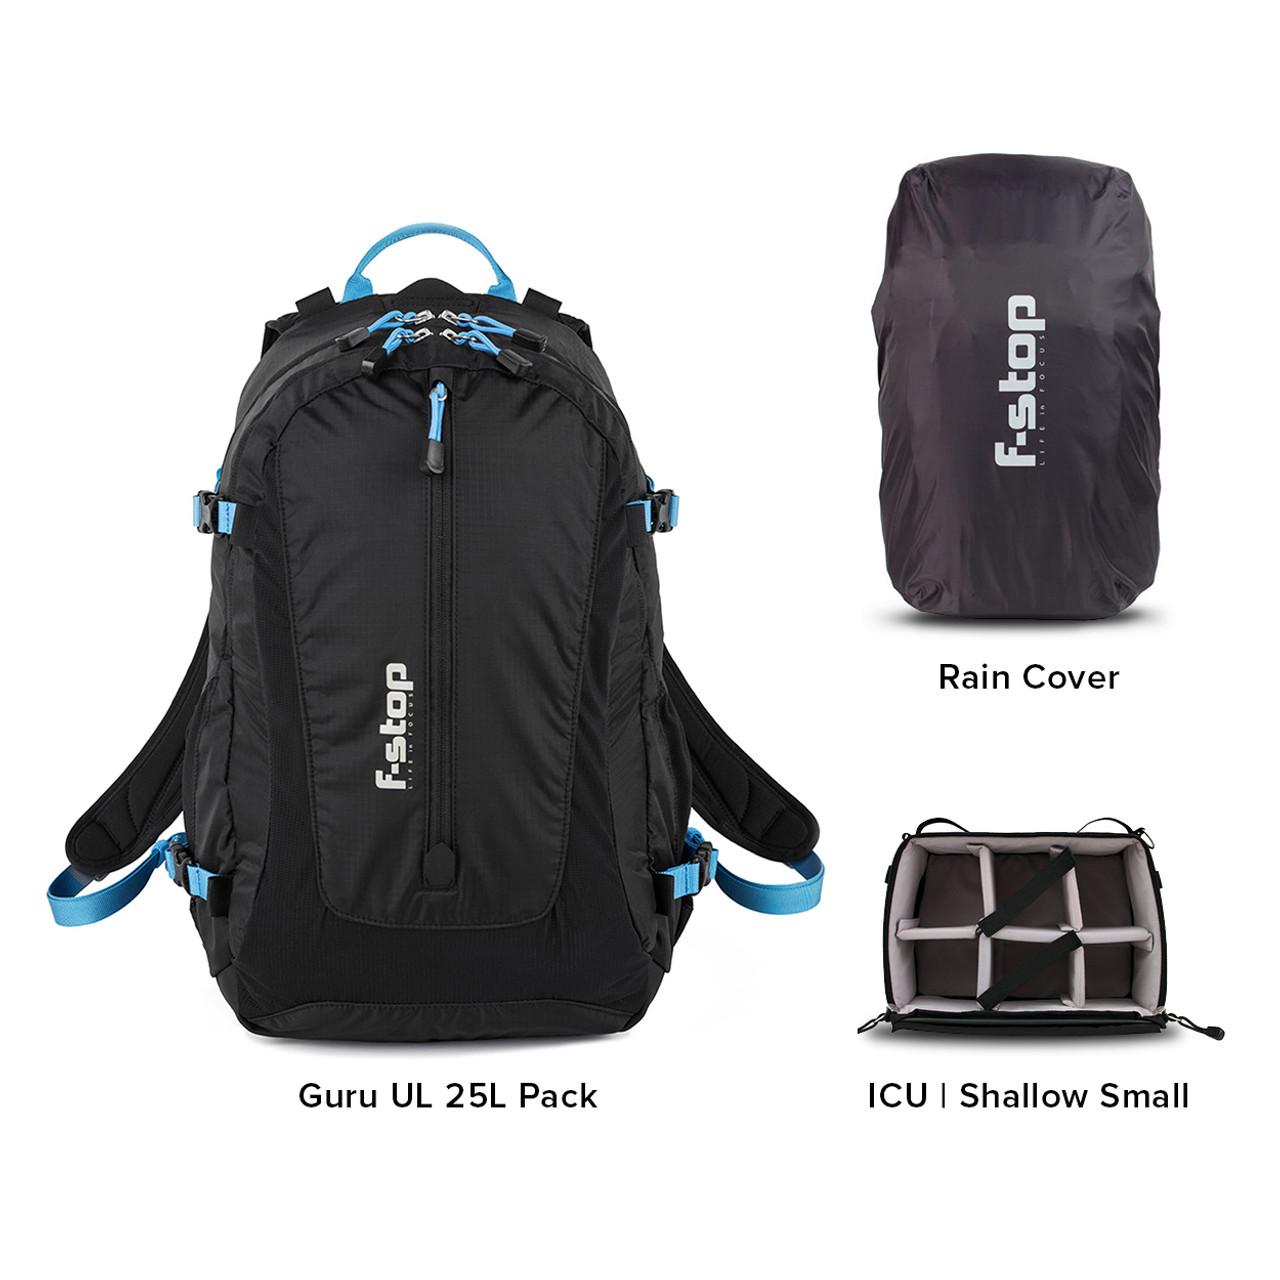 GURU UL - 25 Liter Backpack